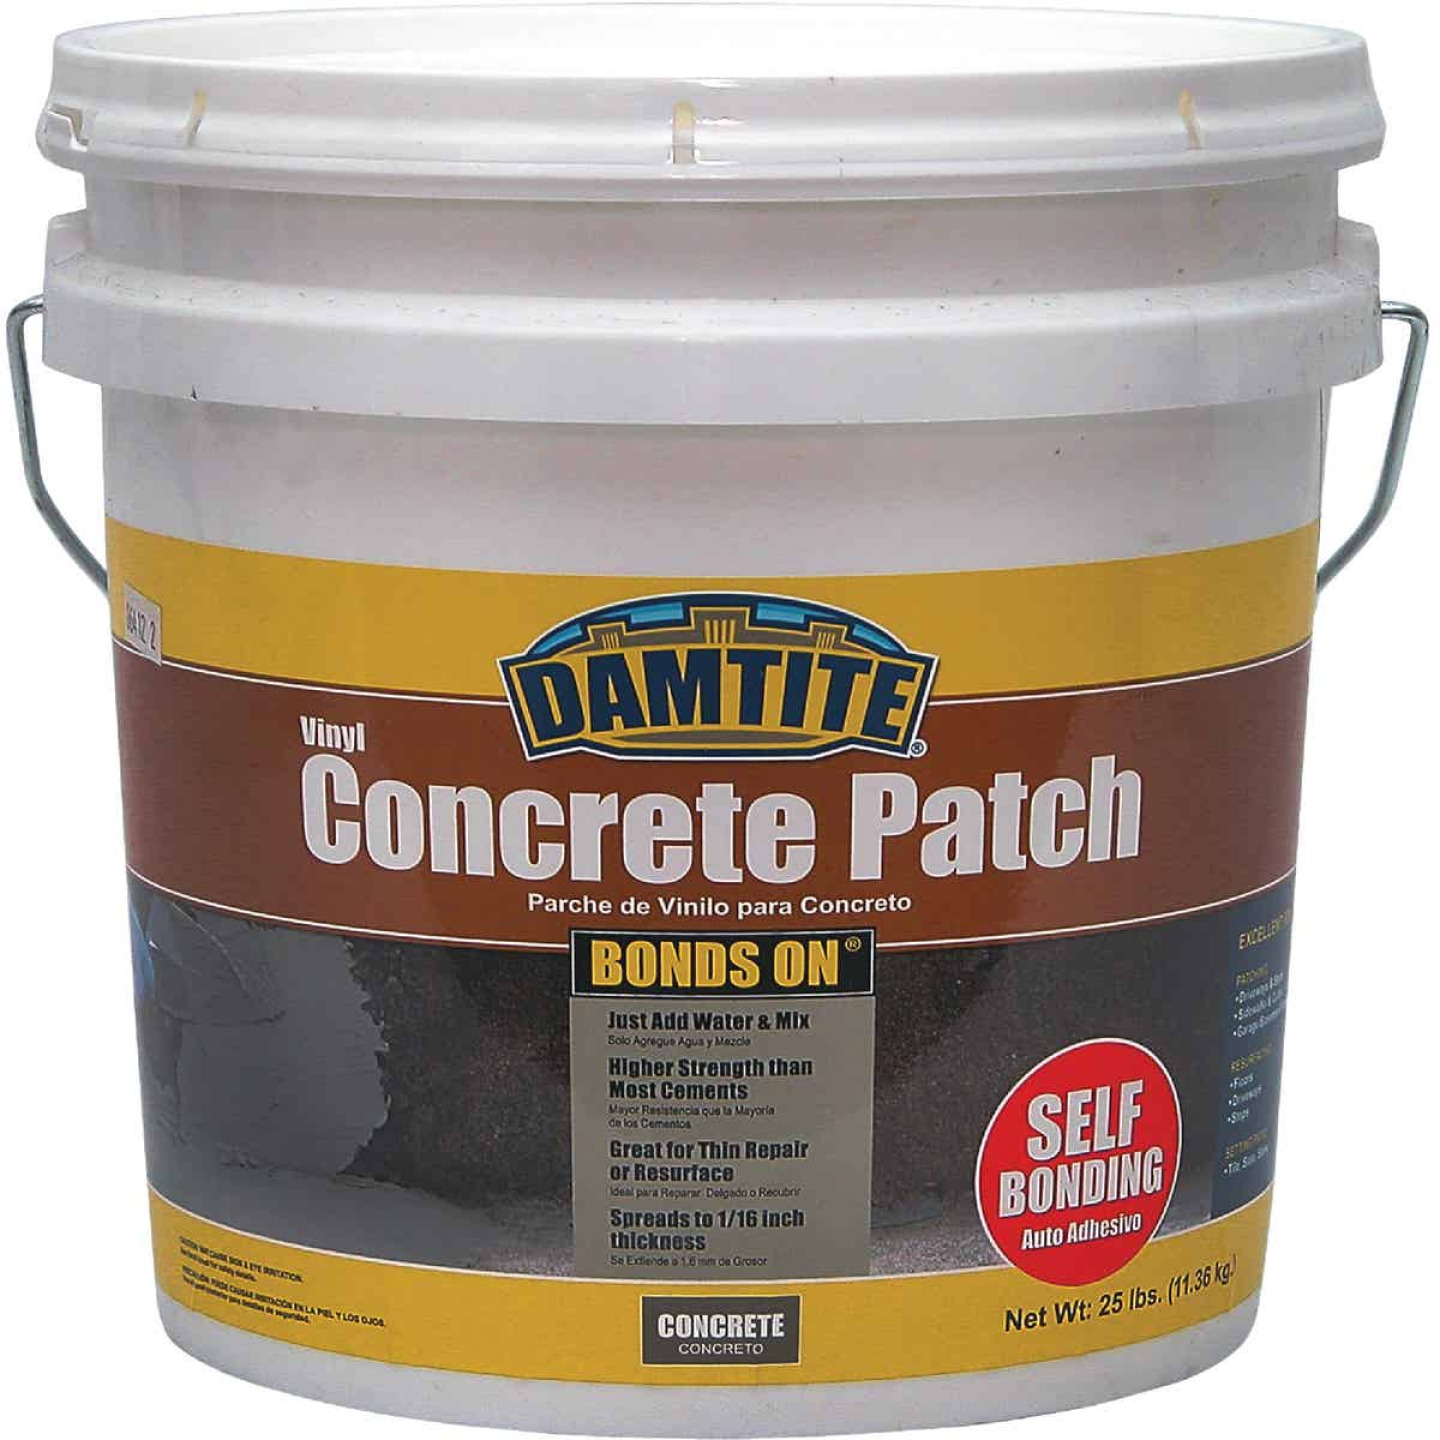 Damtite BondsOn 25 Lb. Gray Ready-to-Use Vinyl Concrete Patch Image 1